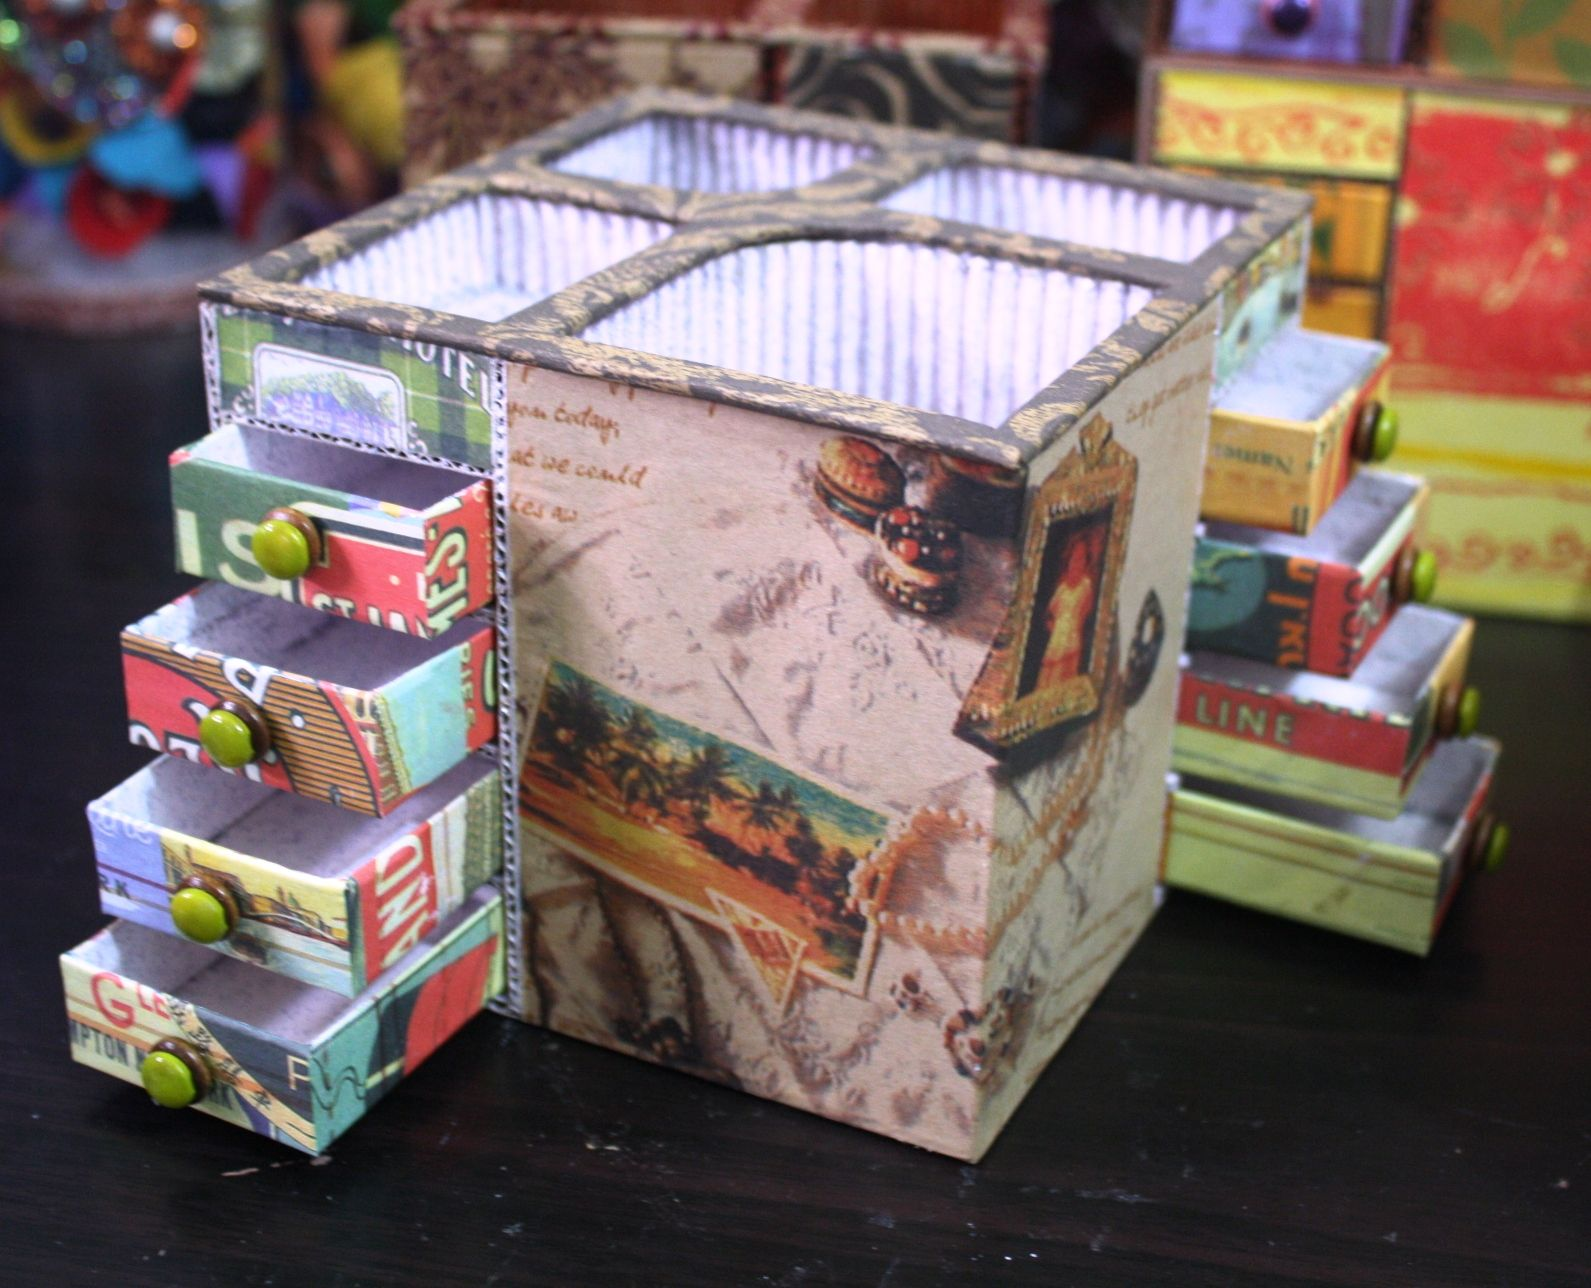 Penholder with matchbox drawers made from recycled corrugated boxes, cigarette boxes and gift wrapping papers.